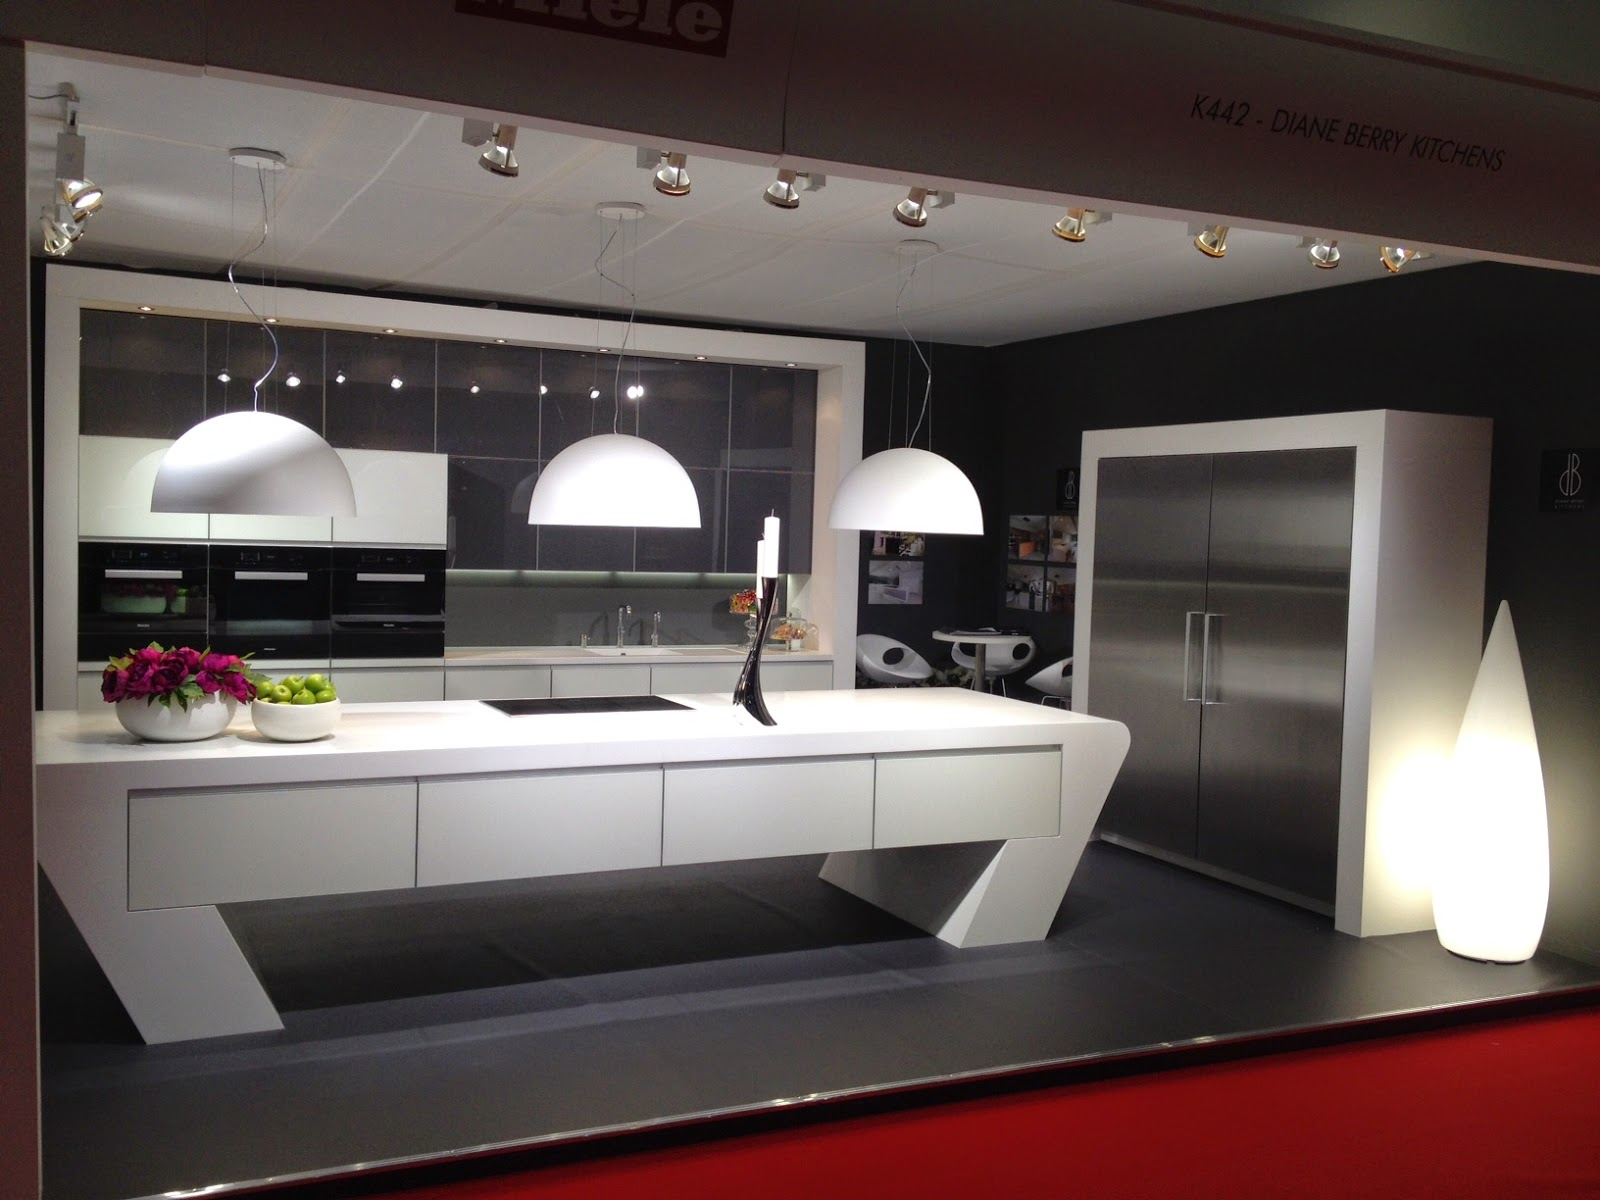 Diane berry kitchens client kitchens grand designs live for Kitchen design london